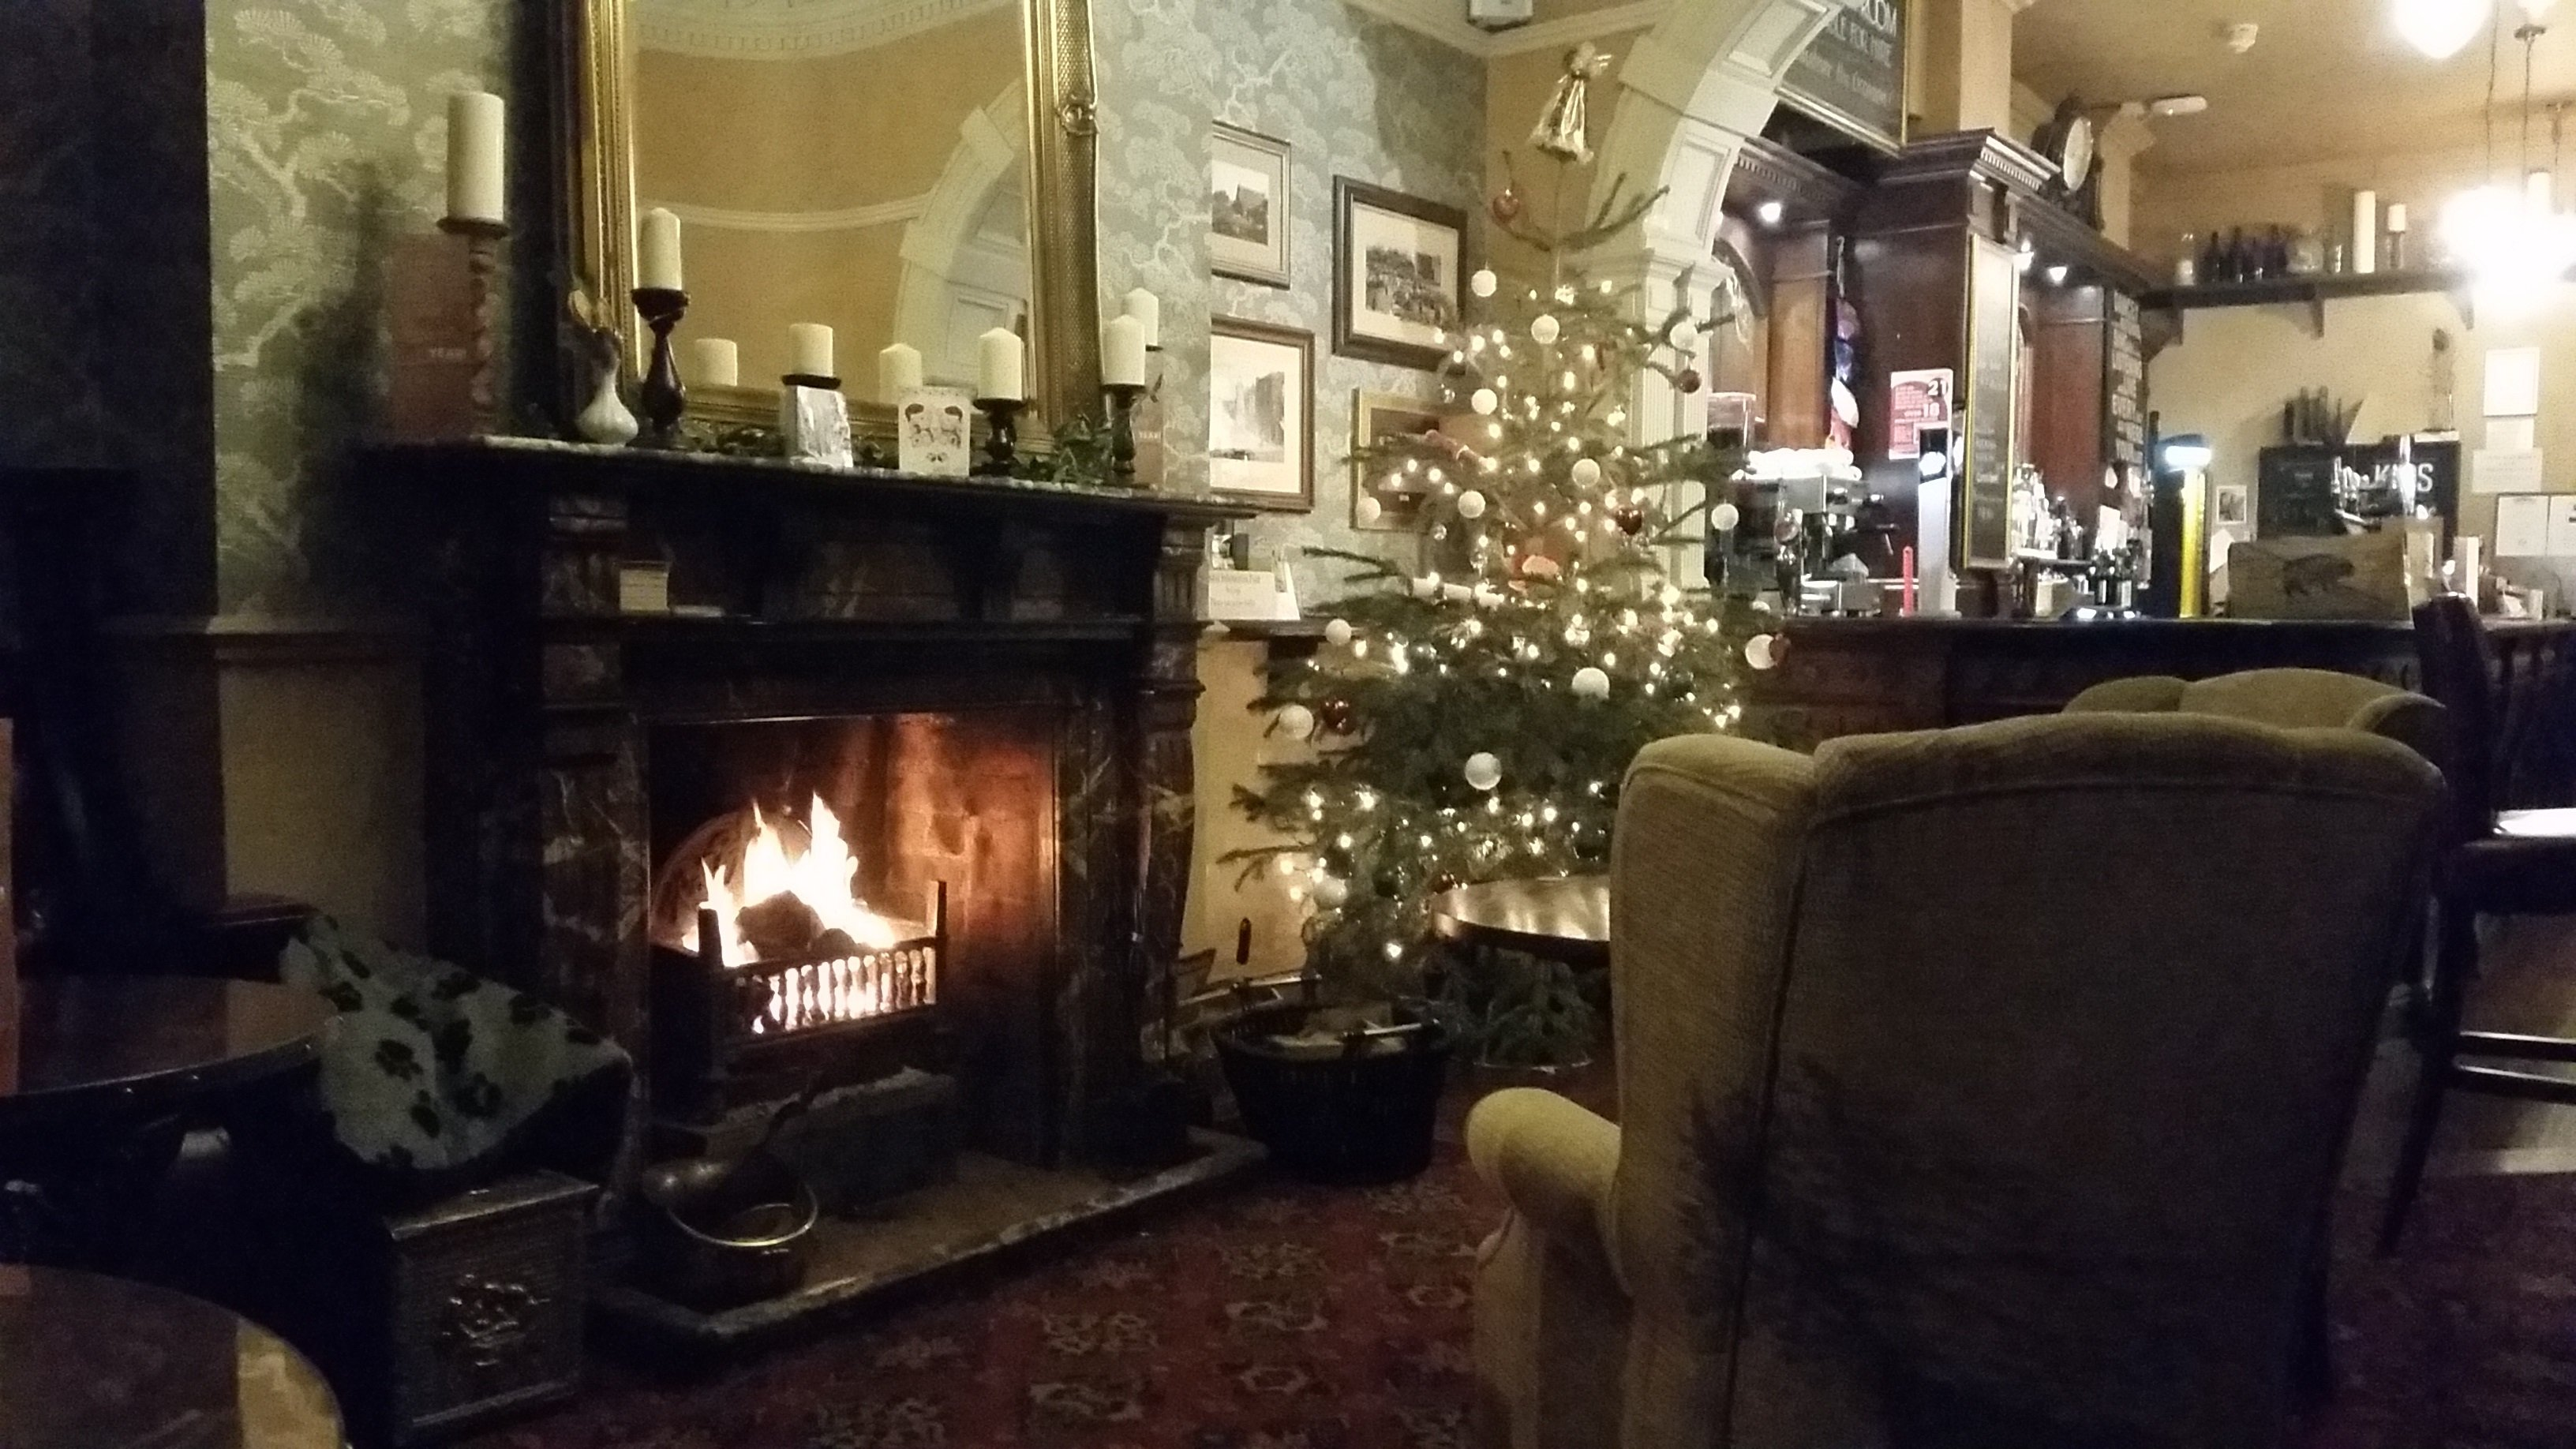 Black Horse Hotel Otley, Yorkshire, England, books make great Christmas gifts